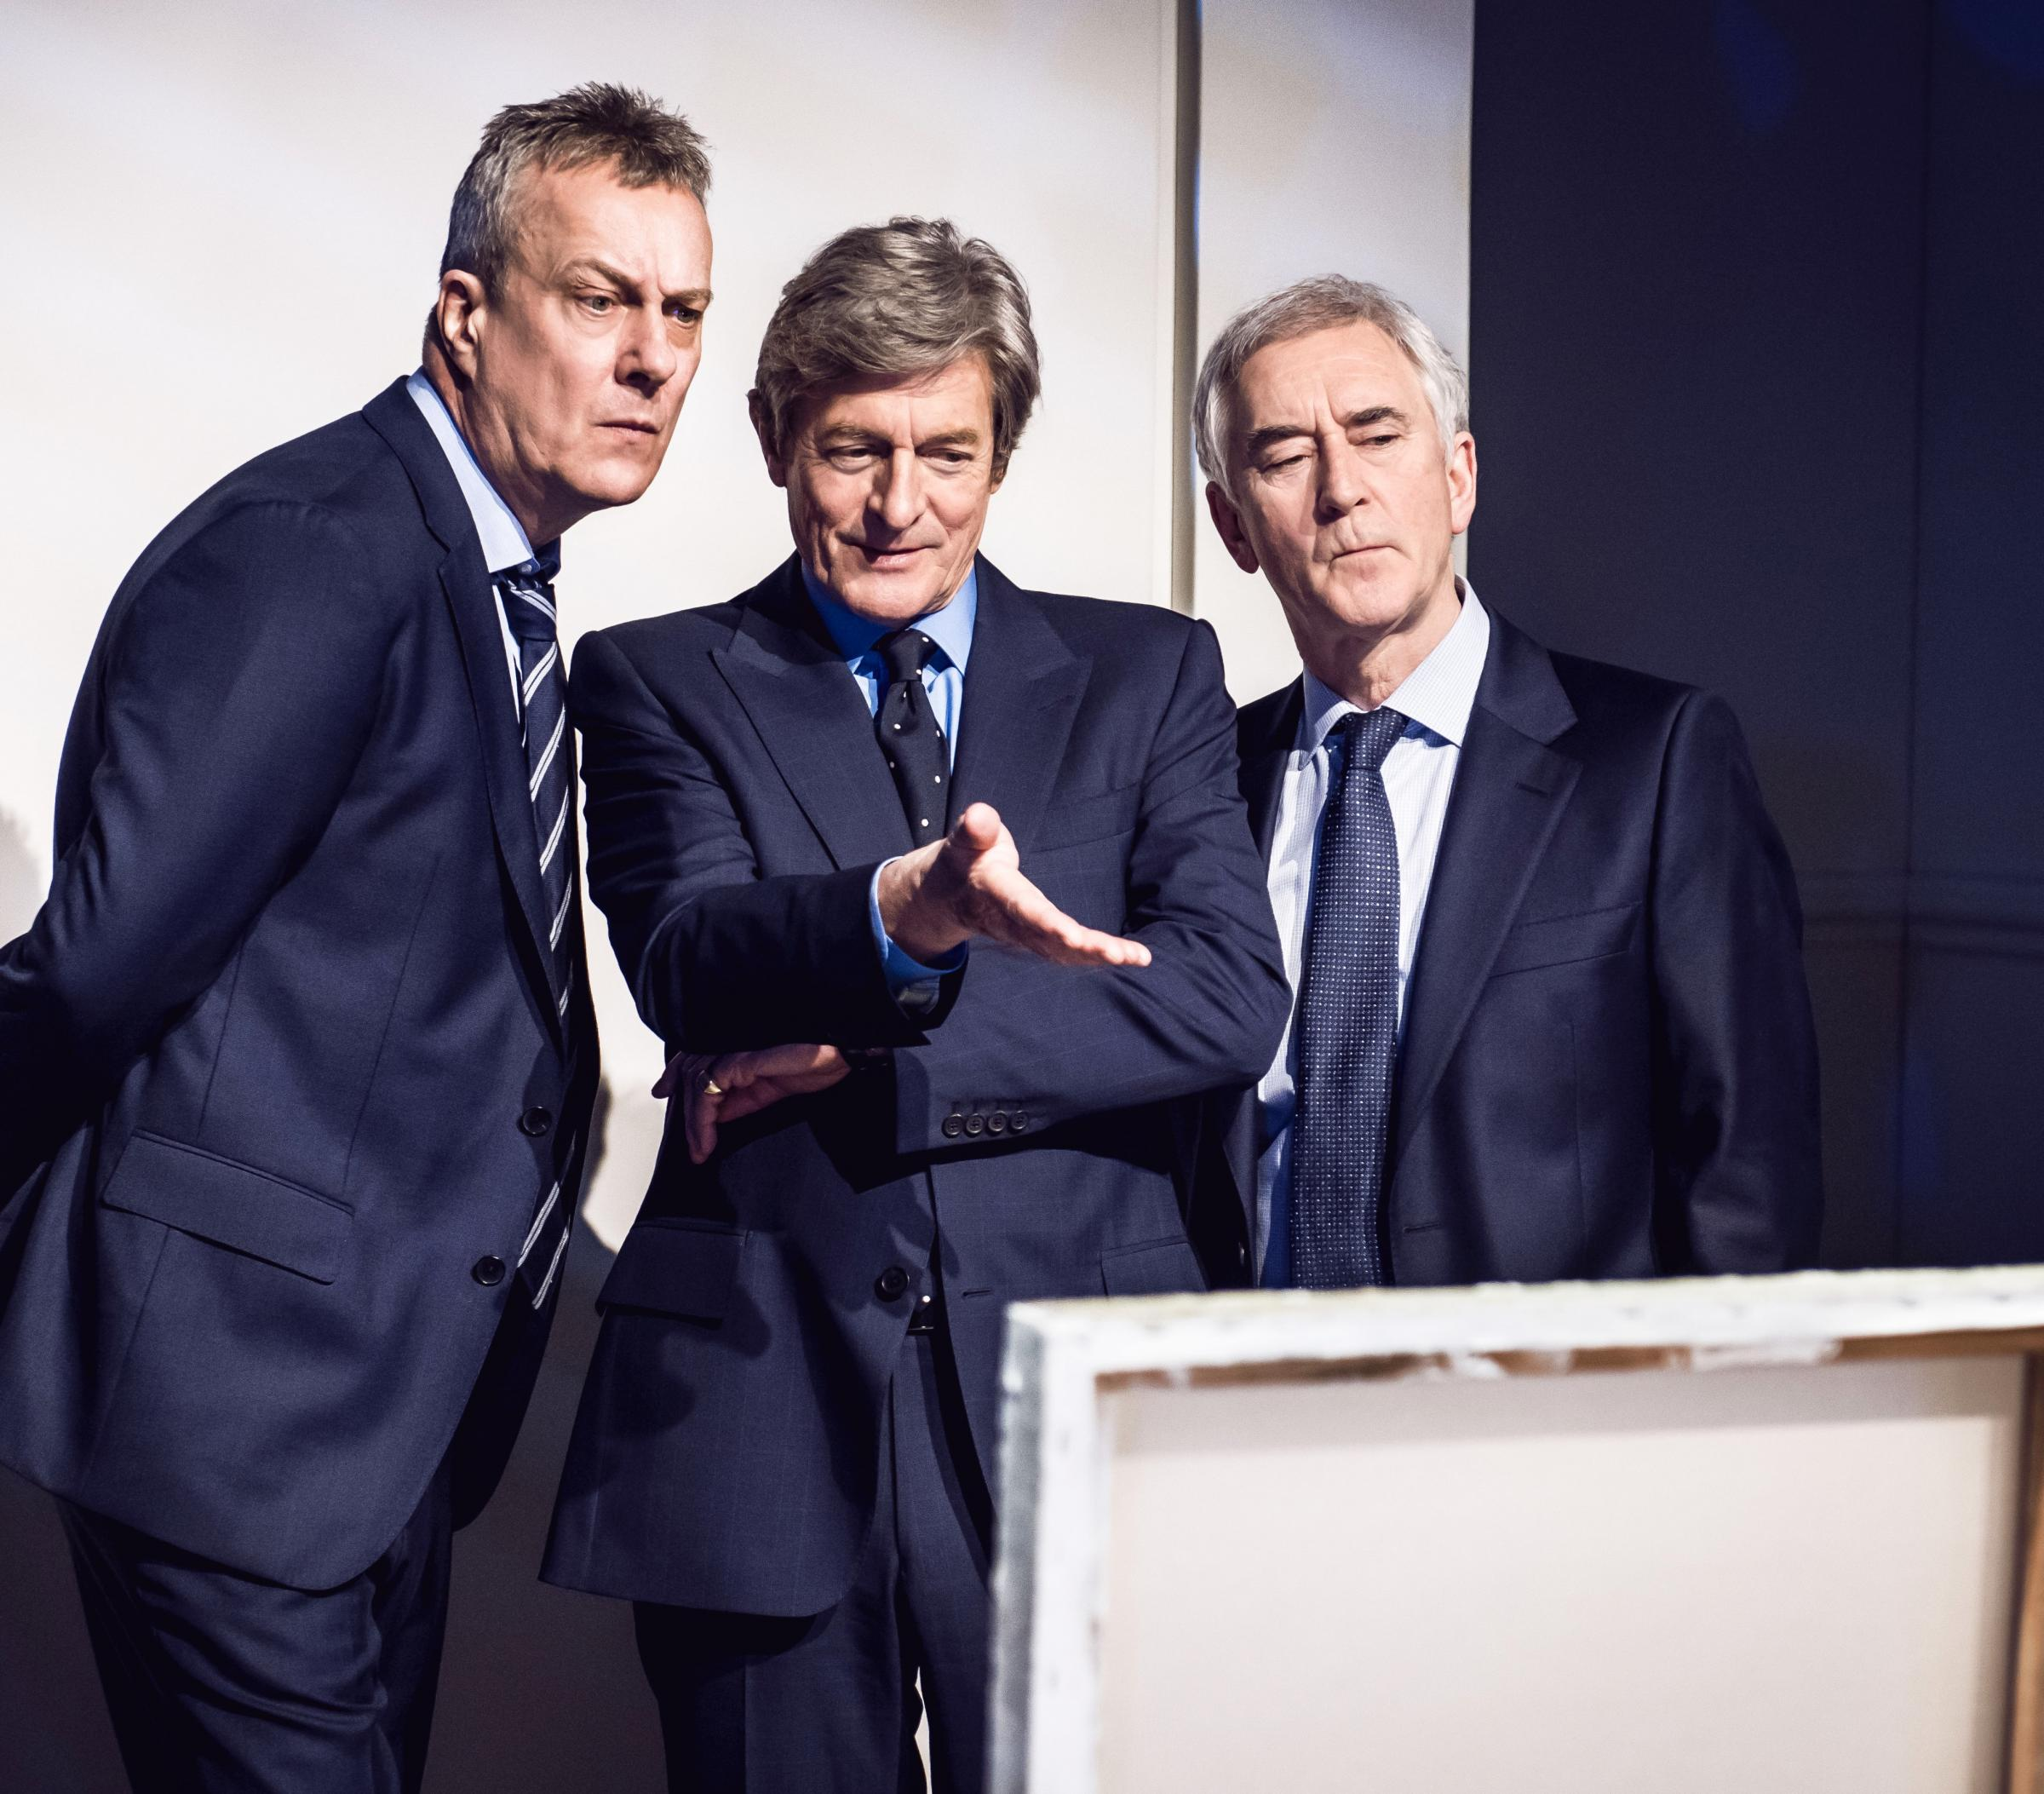 ALL WHITE?: Stephen Tompkinson, Nigel Havers and Denis Lawson in a scene from Art.